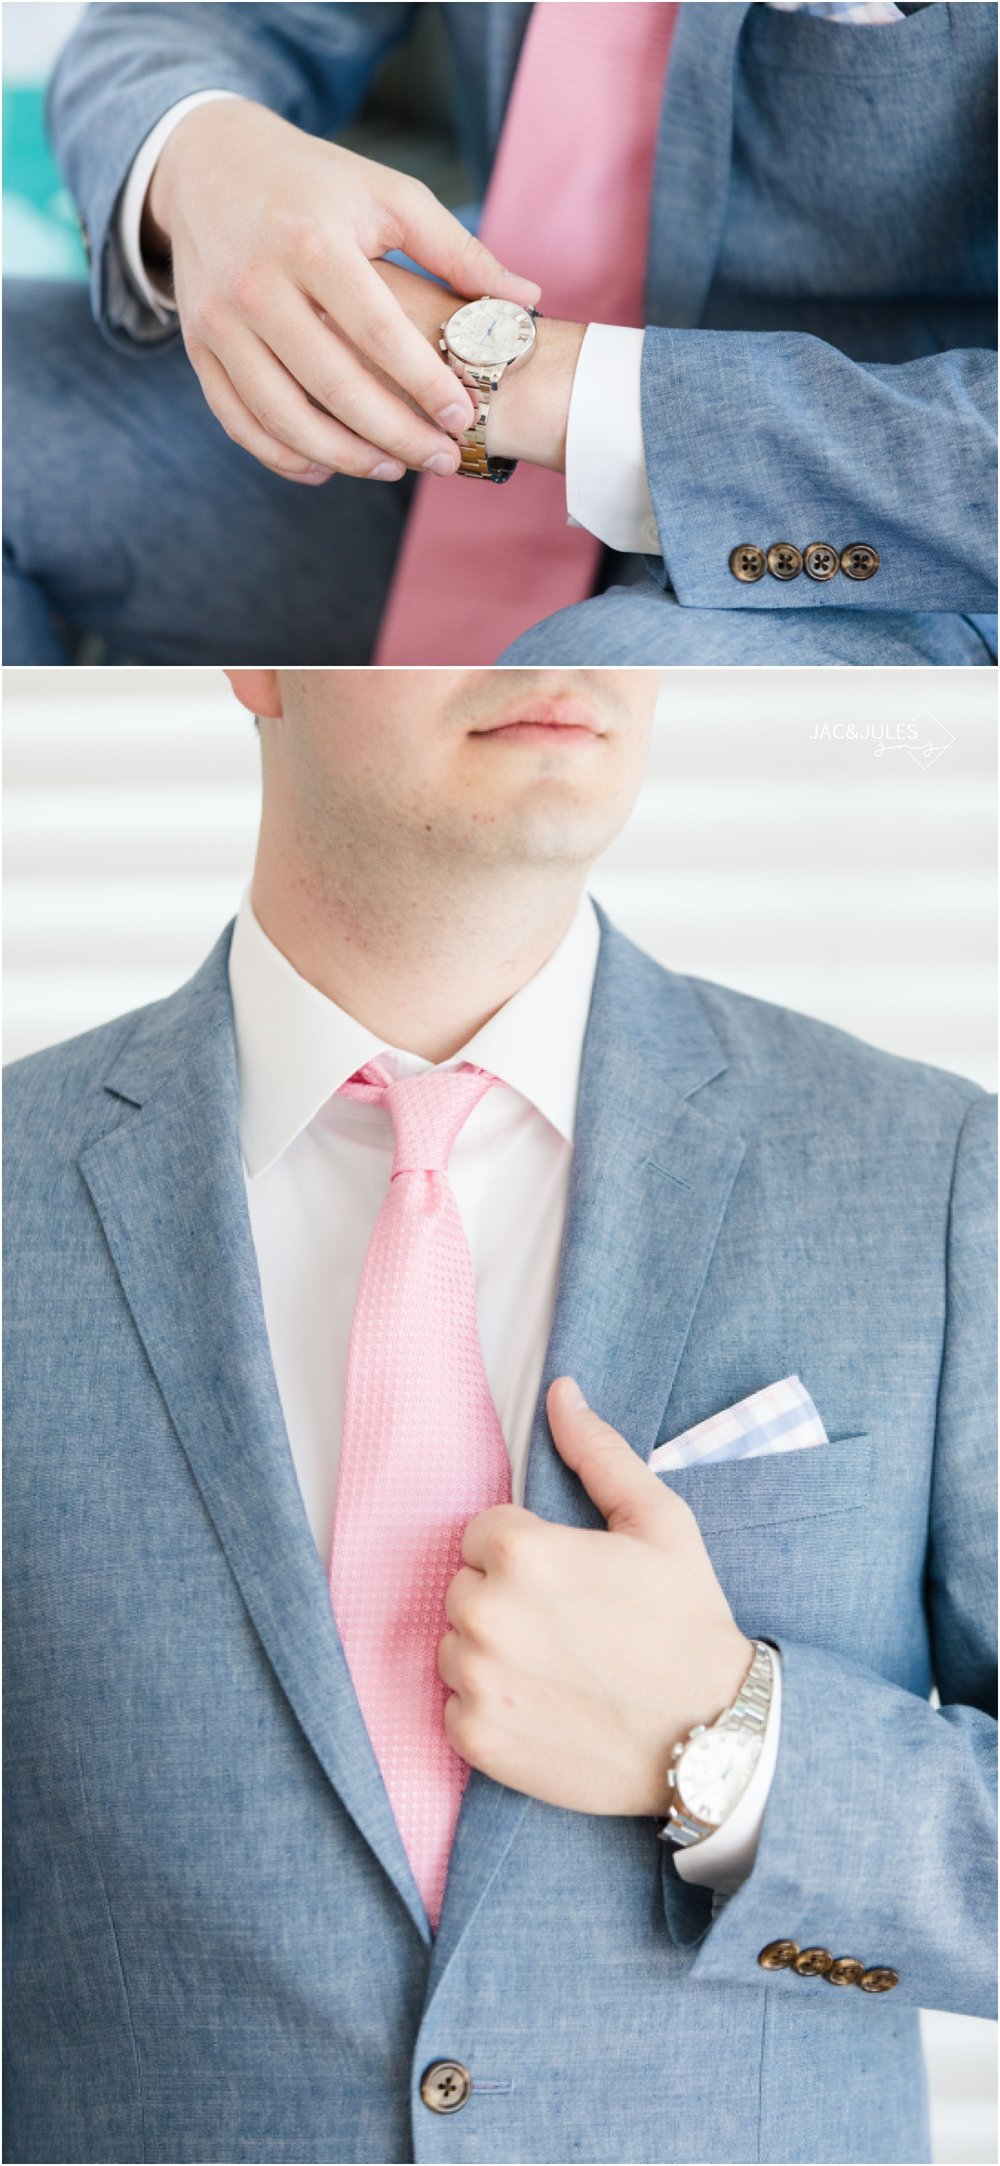 Groom in chambray jacket, coral tie, and Tiffany watch from the bride.